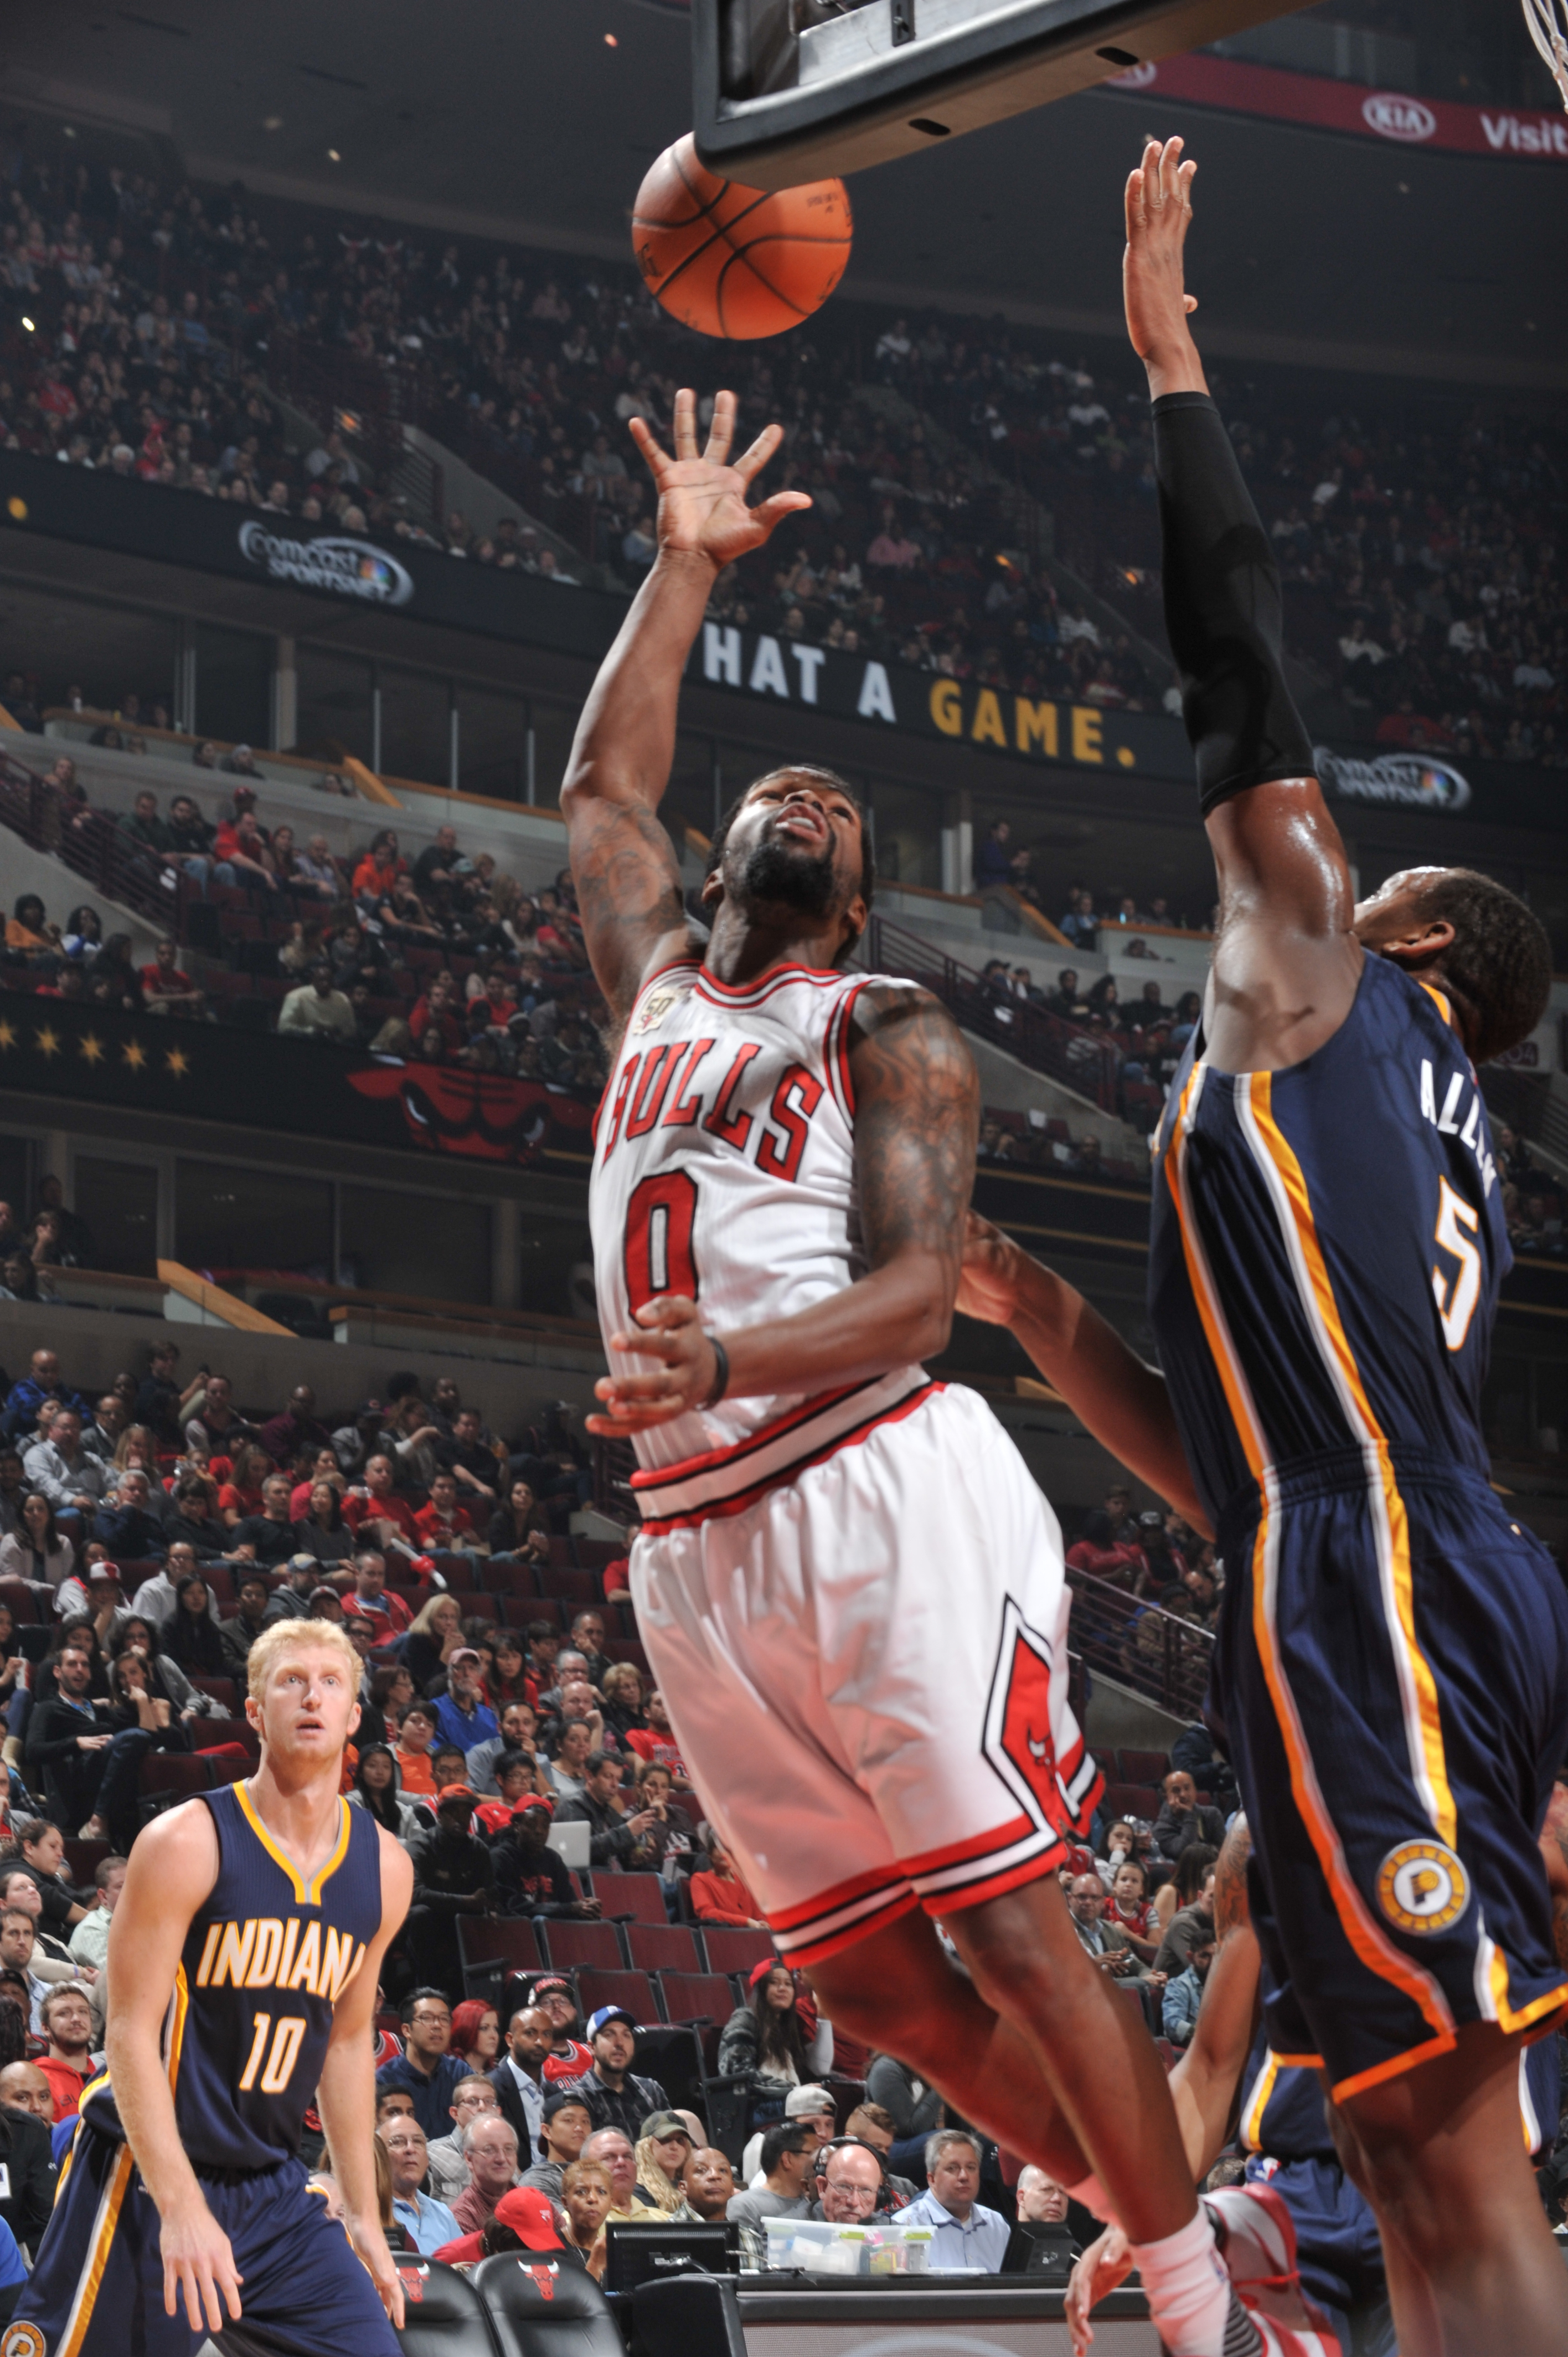 CHICAGO, IL - OCTOBER 20: Aaron Brooks #0 of the Chicago Bulls hooks the ball against Lavoy Allen #5 of the Indiana Pacers during the preseason game on October 20, 2015 at United Center in Boston, Massachusetts. (Photo by Randy Belice/NBAE via Getty Image